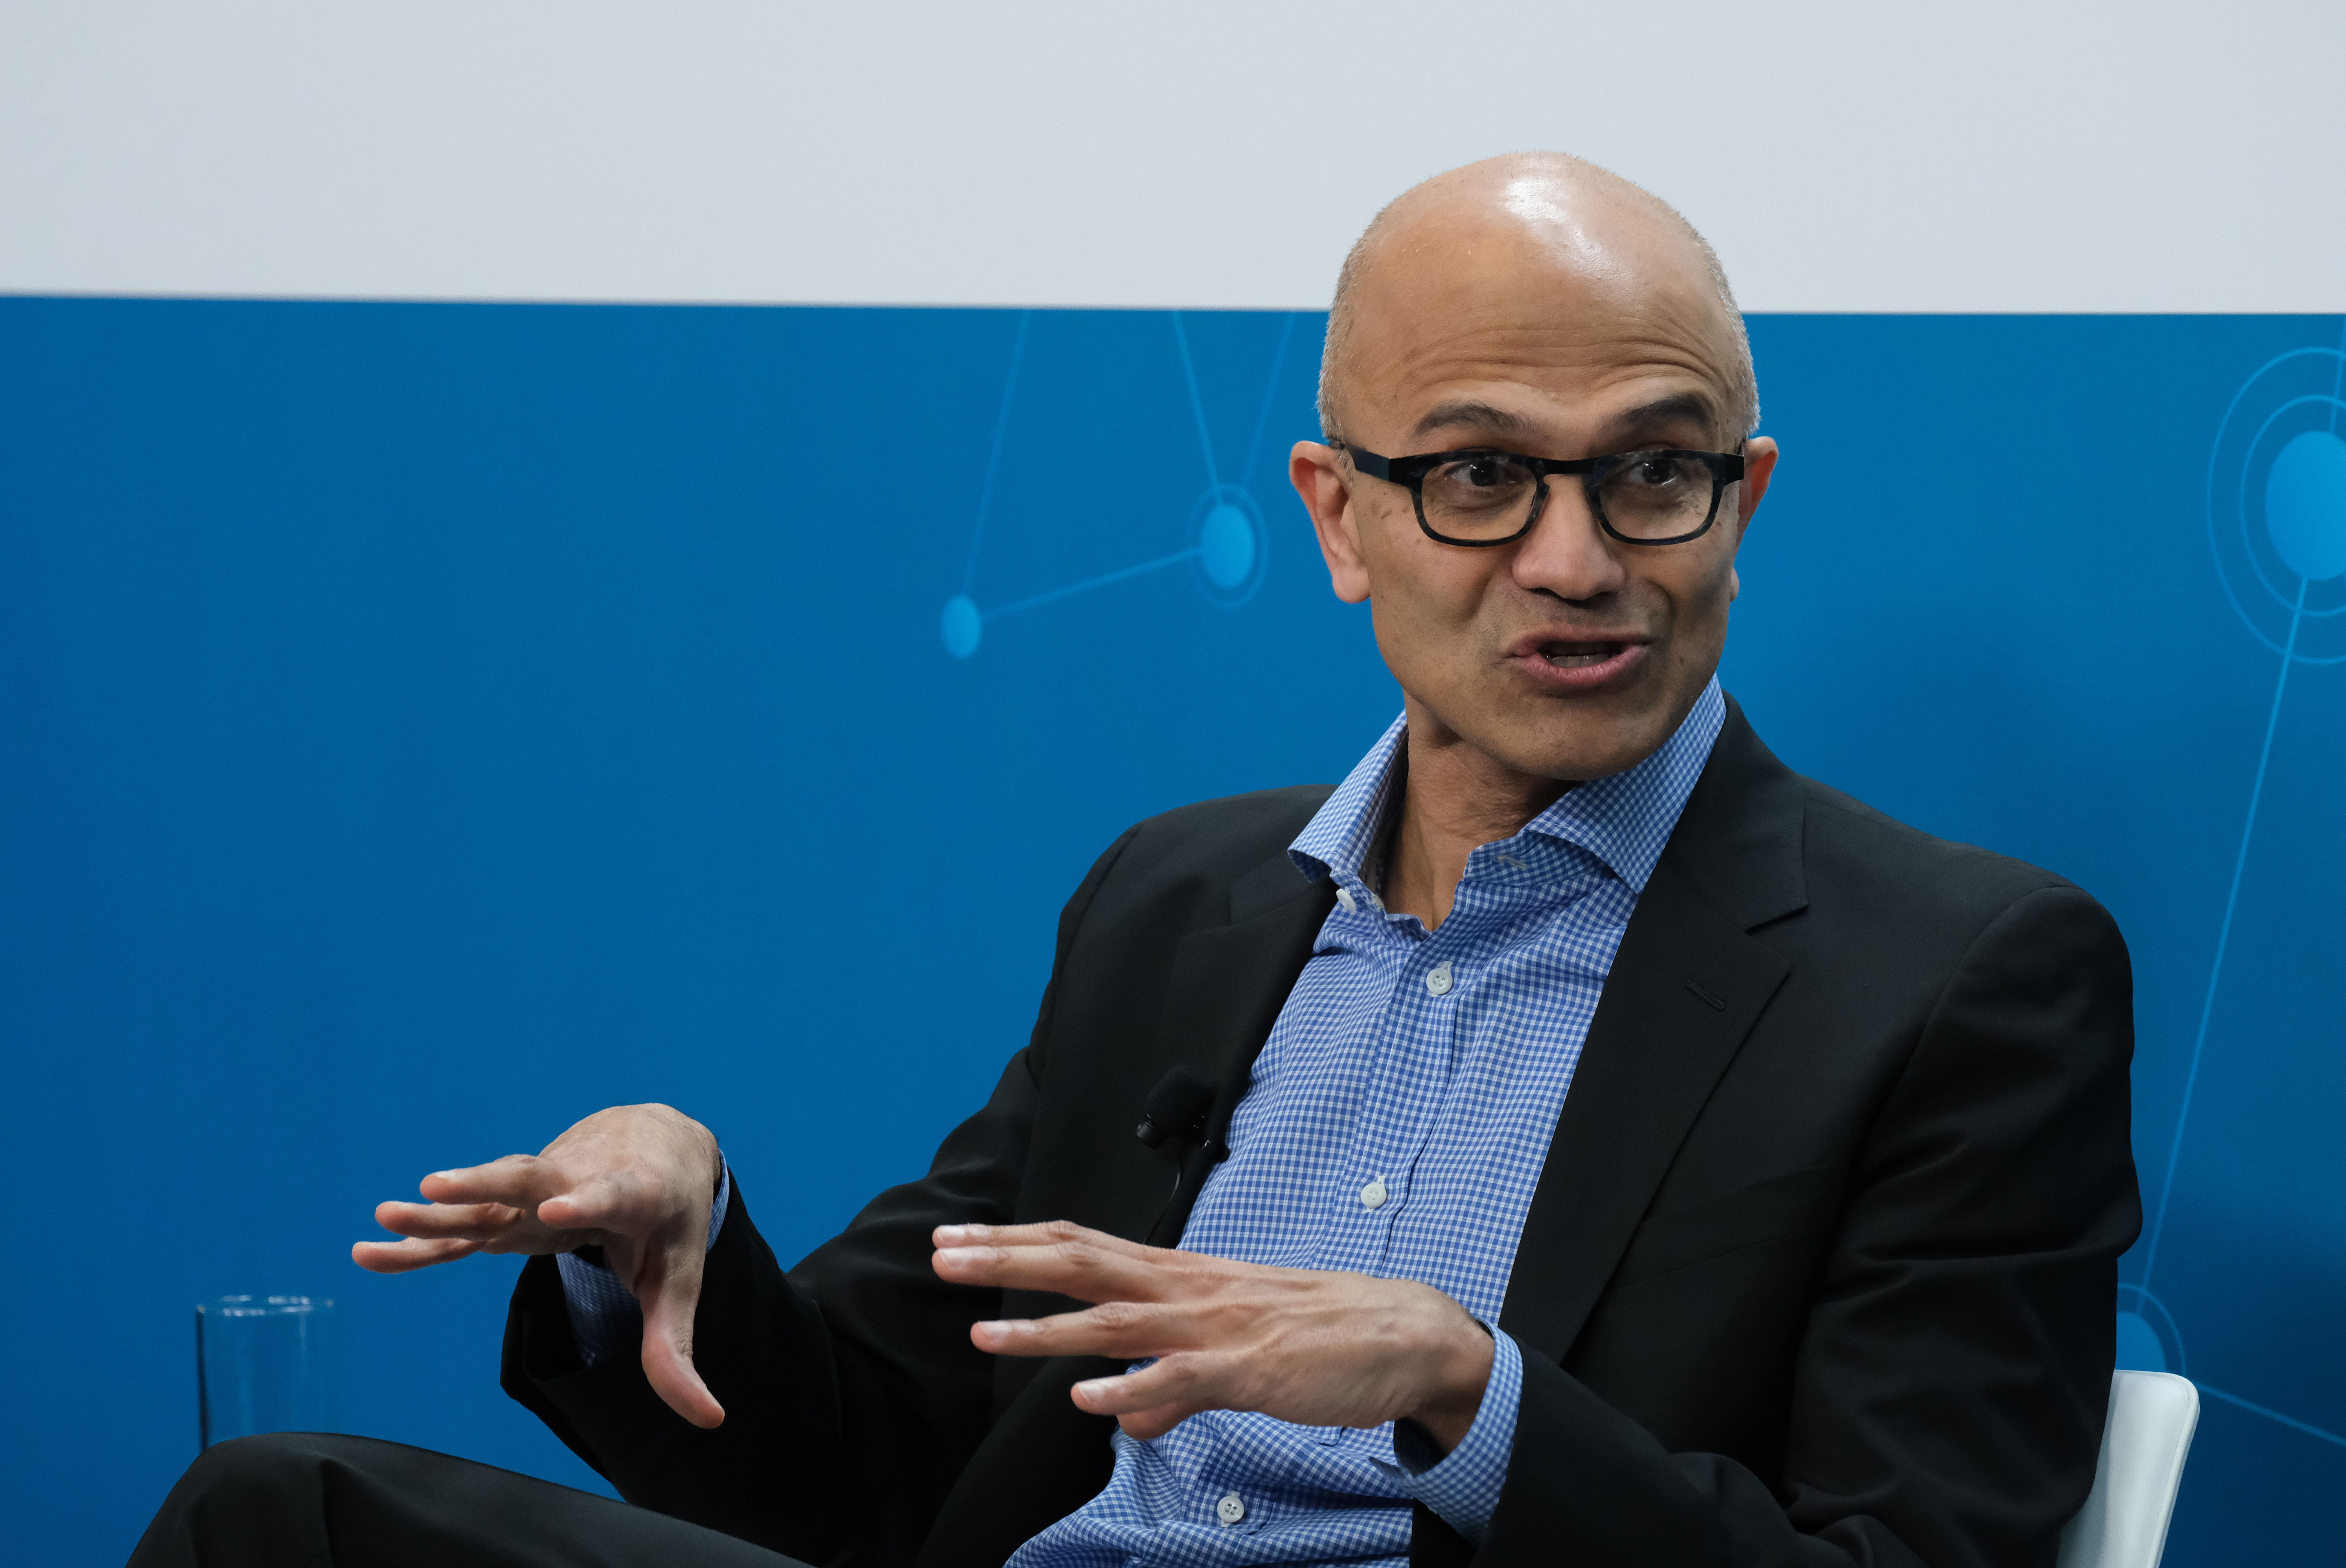 Microsoft CEO touts open approach at Build 2019 conference